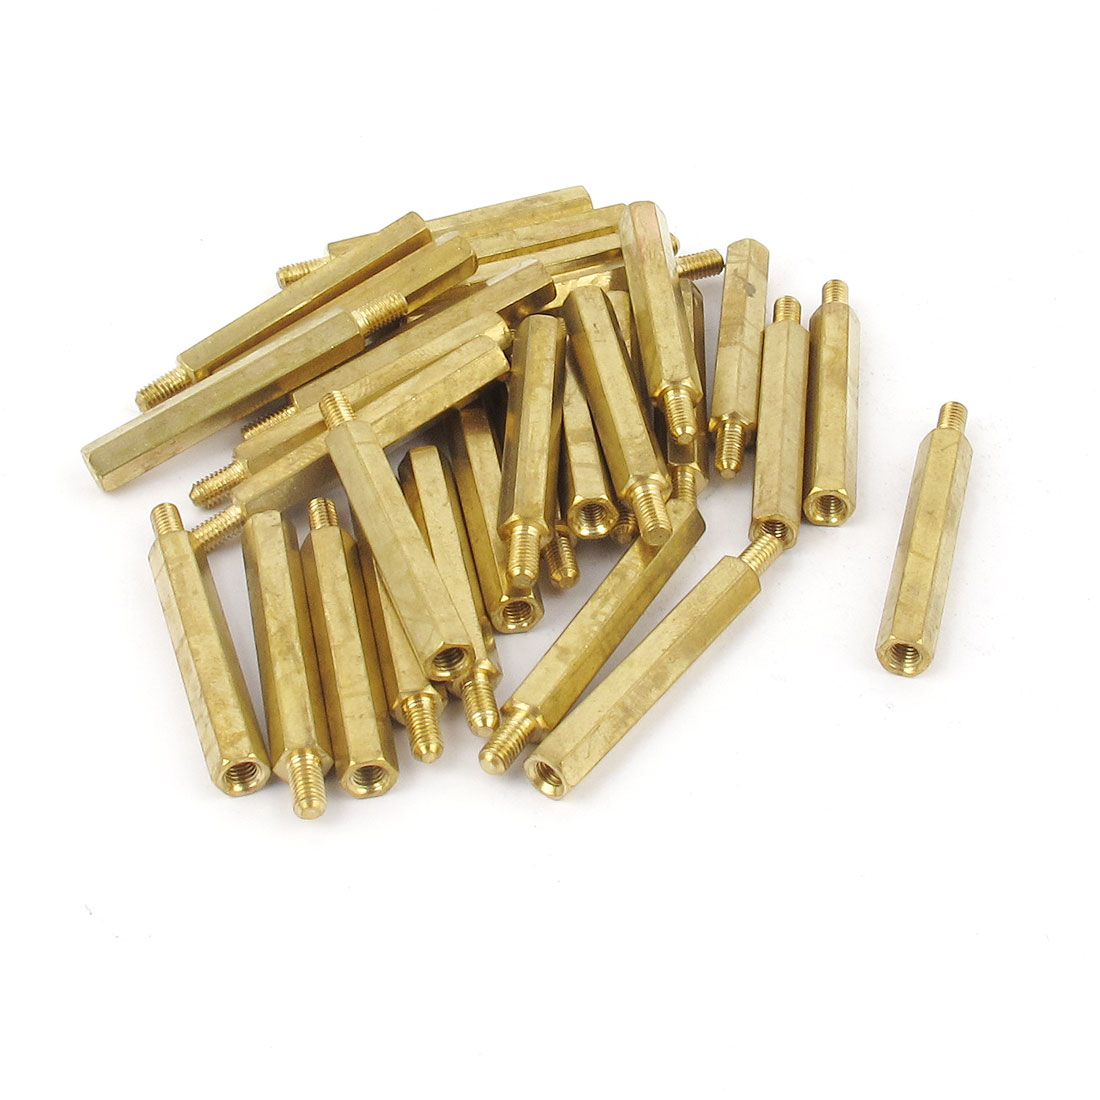 30Pcs M3 3mm Male Female Brass PCB Spacer Hex Stand-Off Screw Pillar 30mm